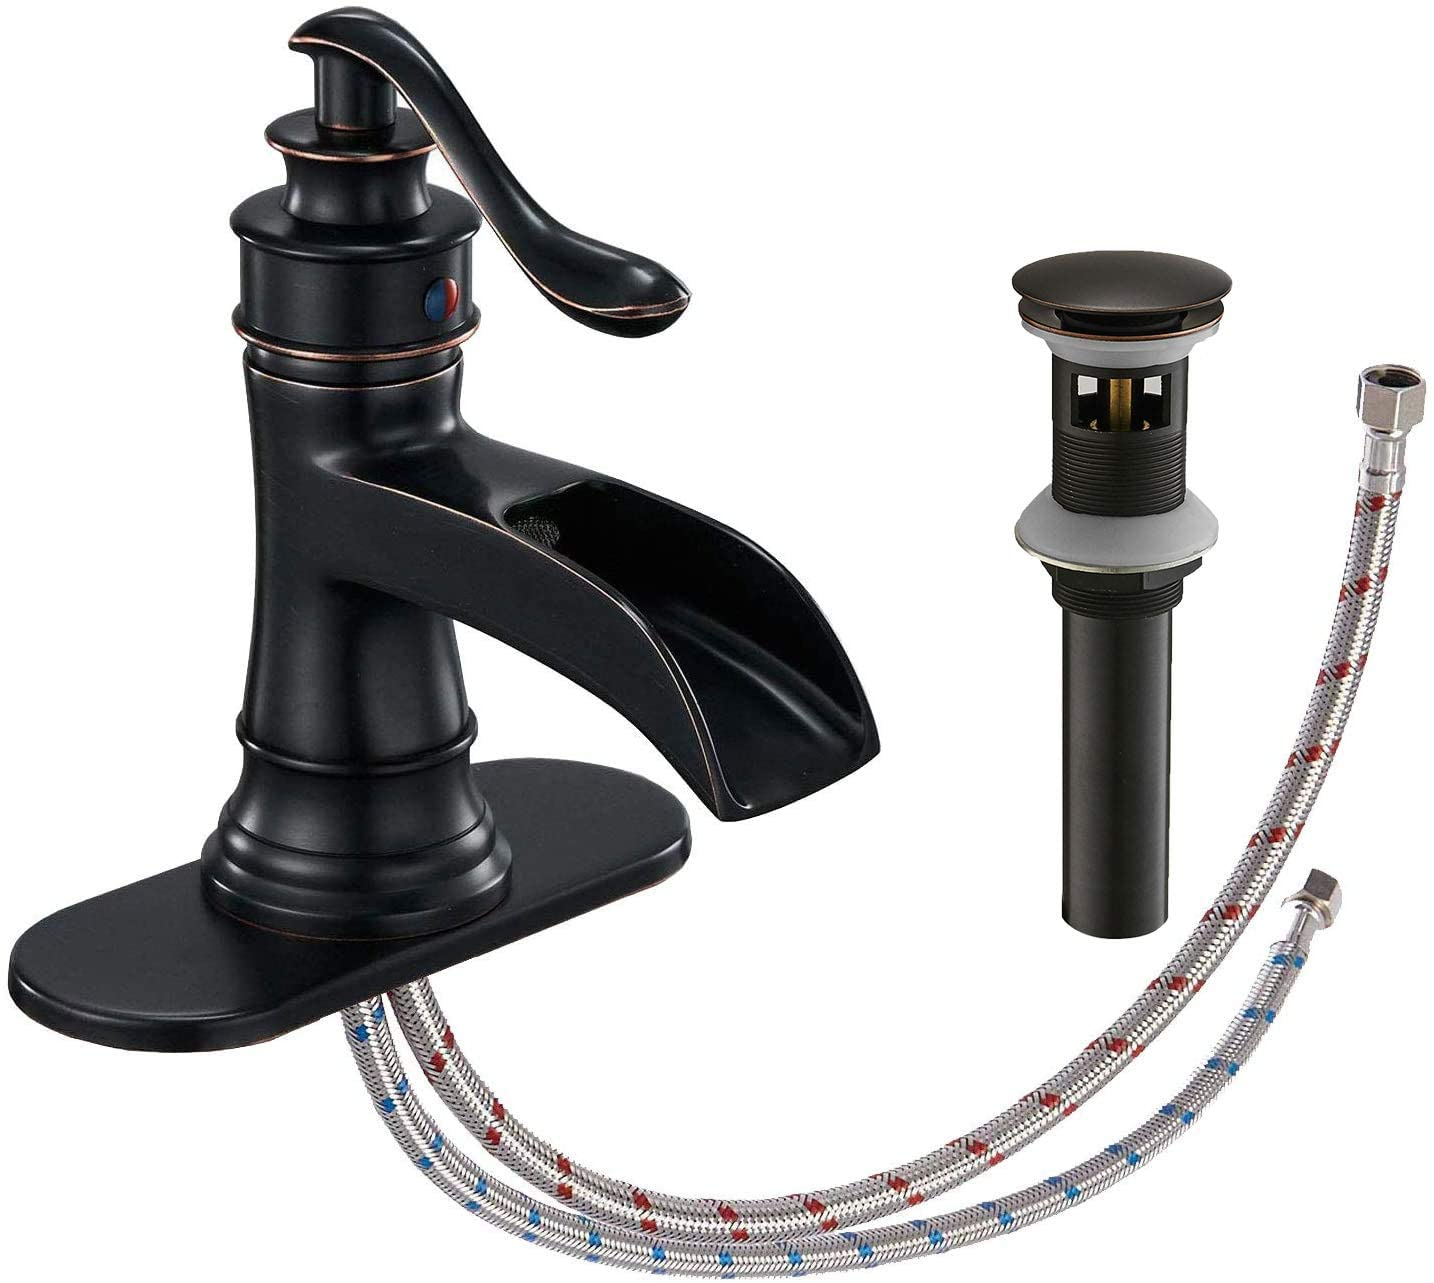 Waterfall Bathroom Faucet Oil Rubbed Bronze Sink With Pop Up Drain Stopper Faucets Single Hole Rustic Vanity Farmhouse Overflow One Handle Bath Black Commercial Assembly Lead Free By Homevacious Amazon Com